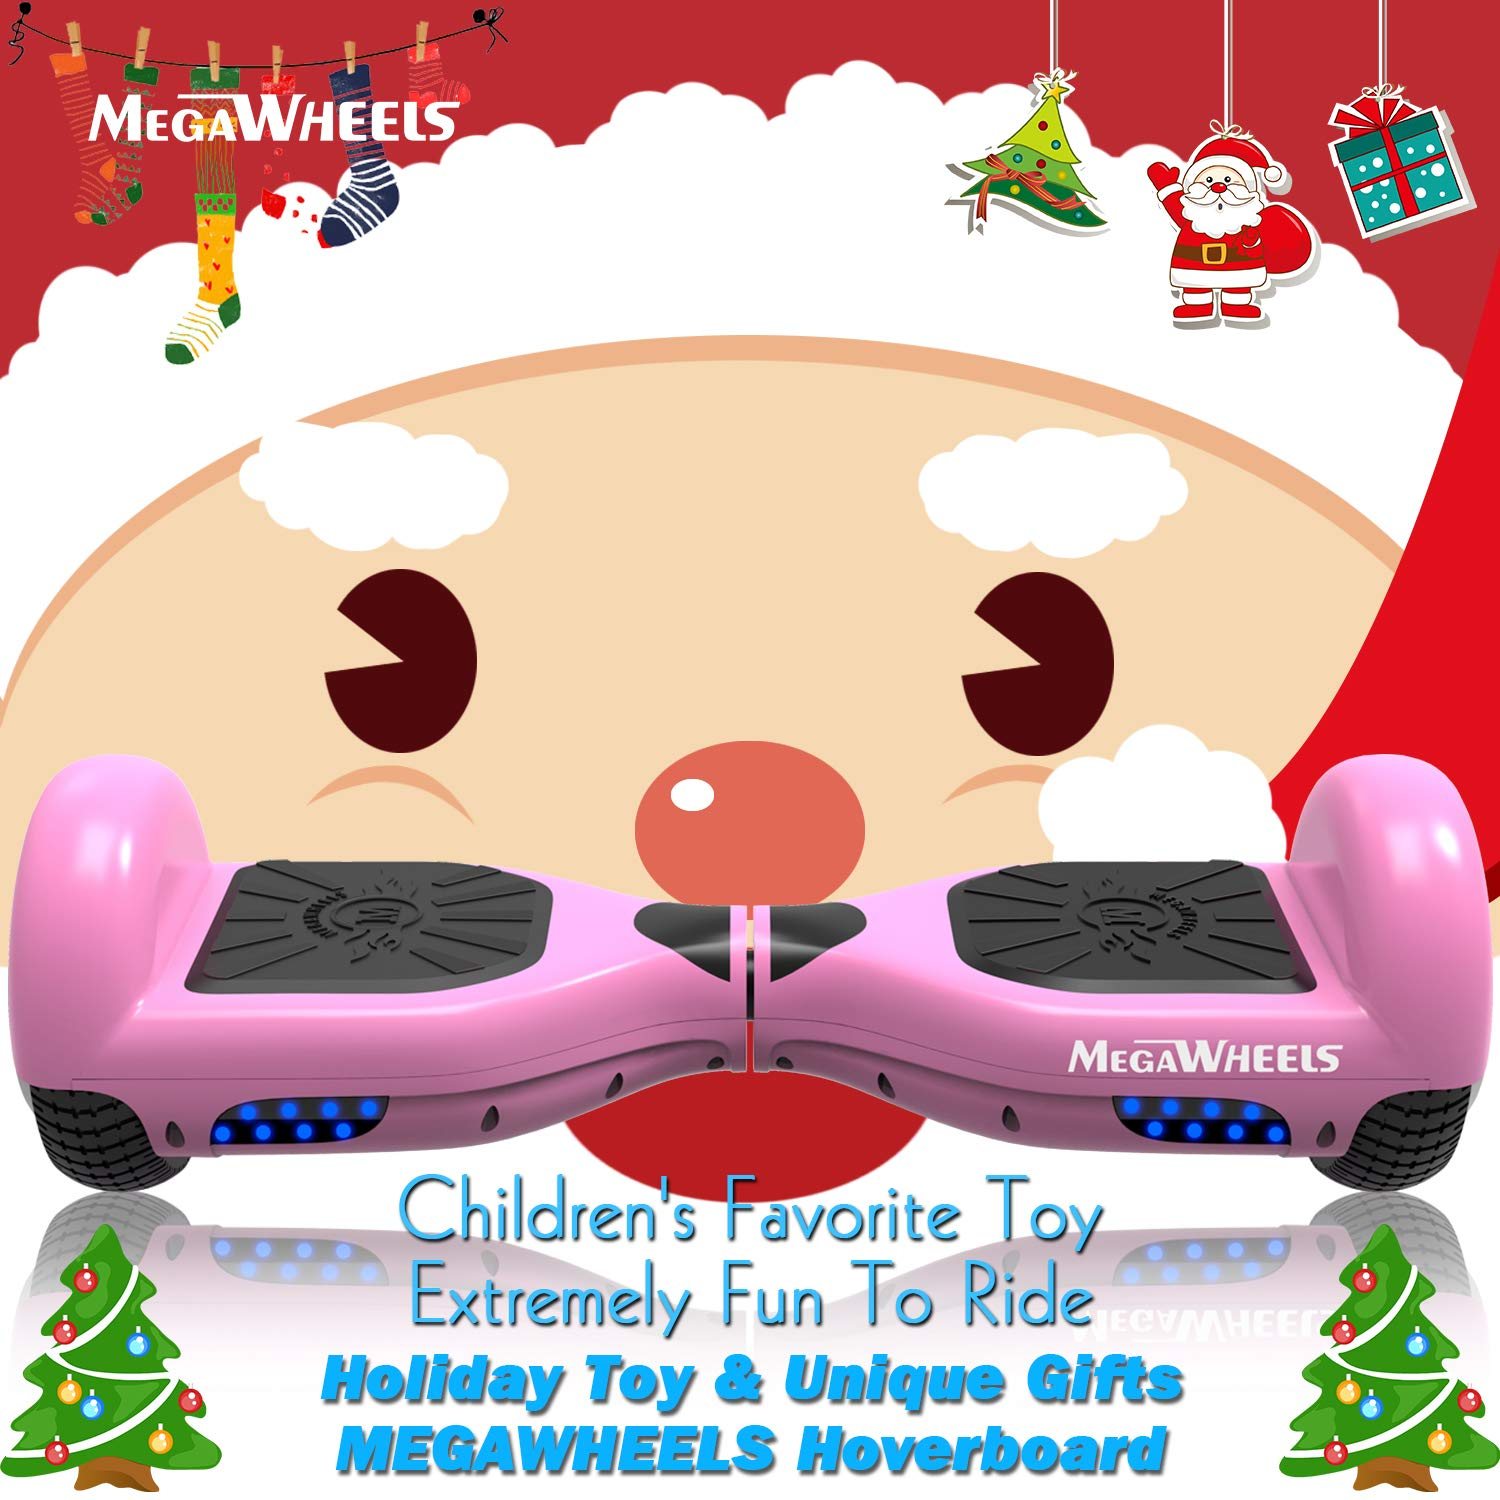 MegaWheels Hoverboard Self Balancing Scooter Hover Board for Kids Adults with UL Certified